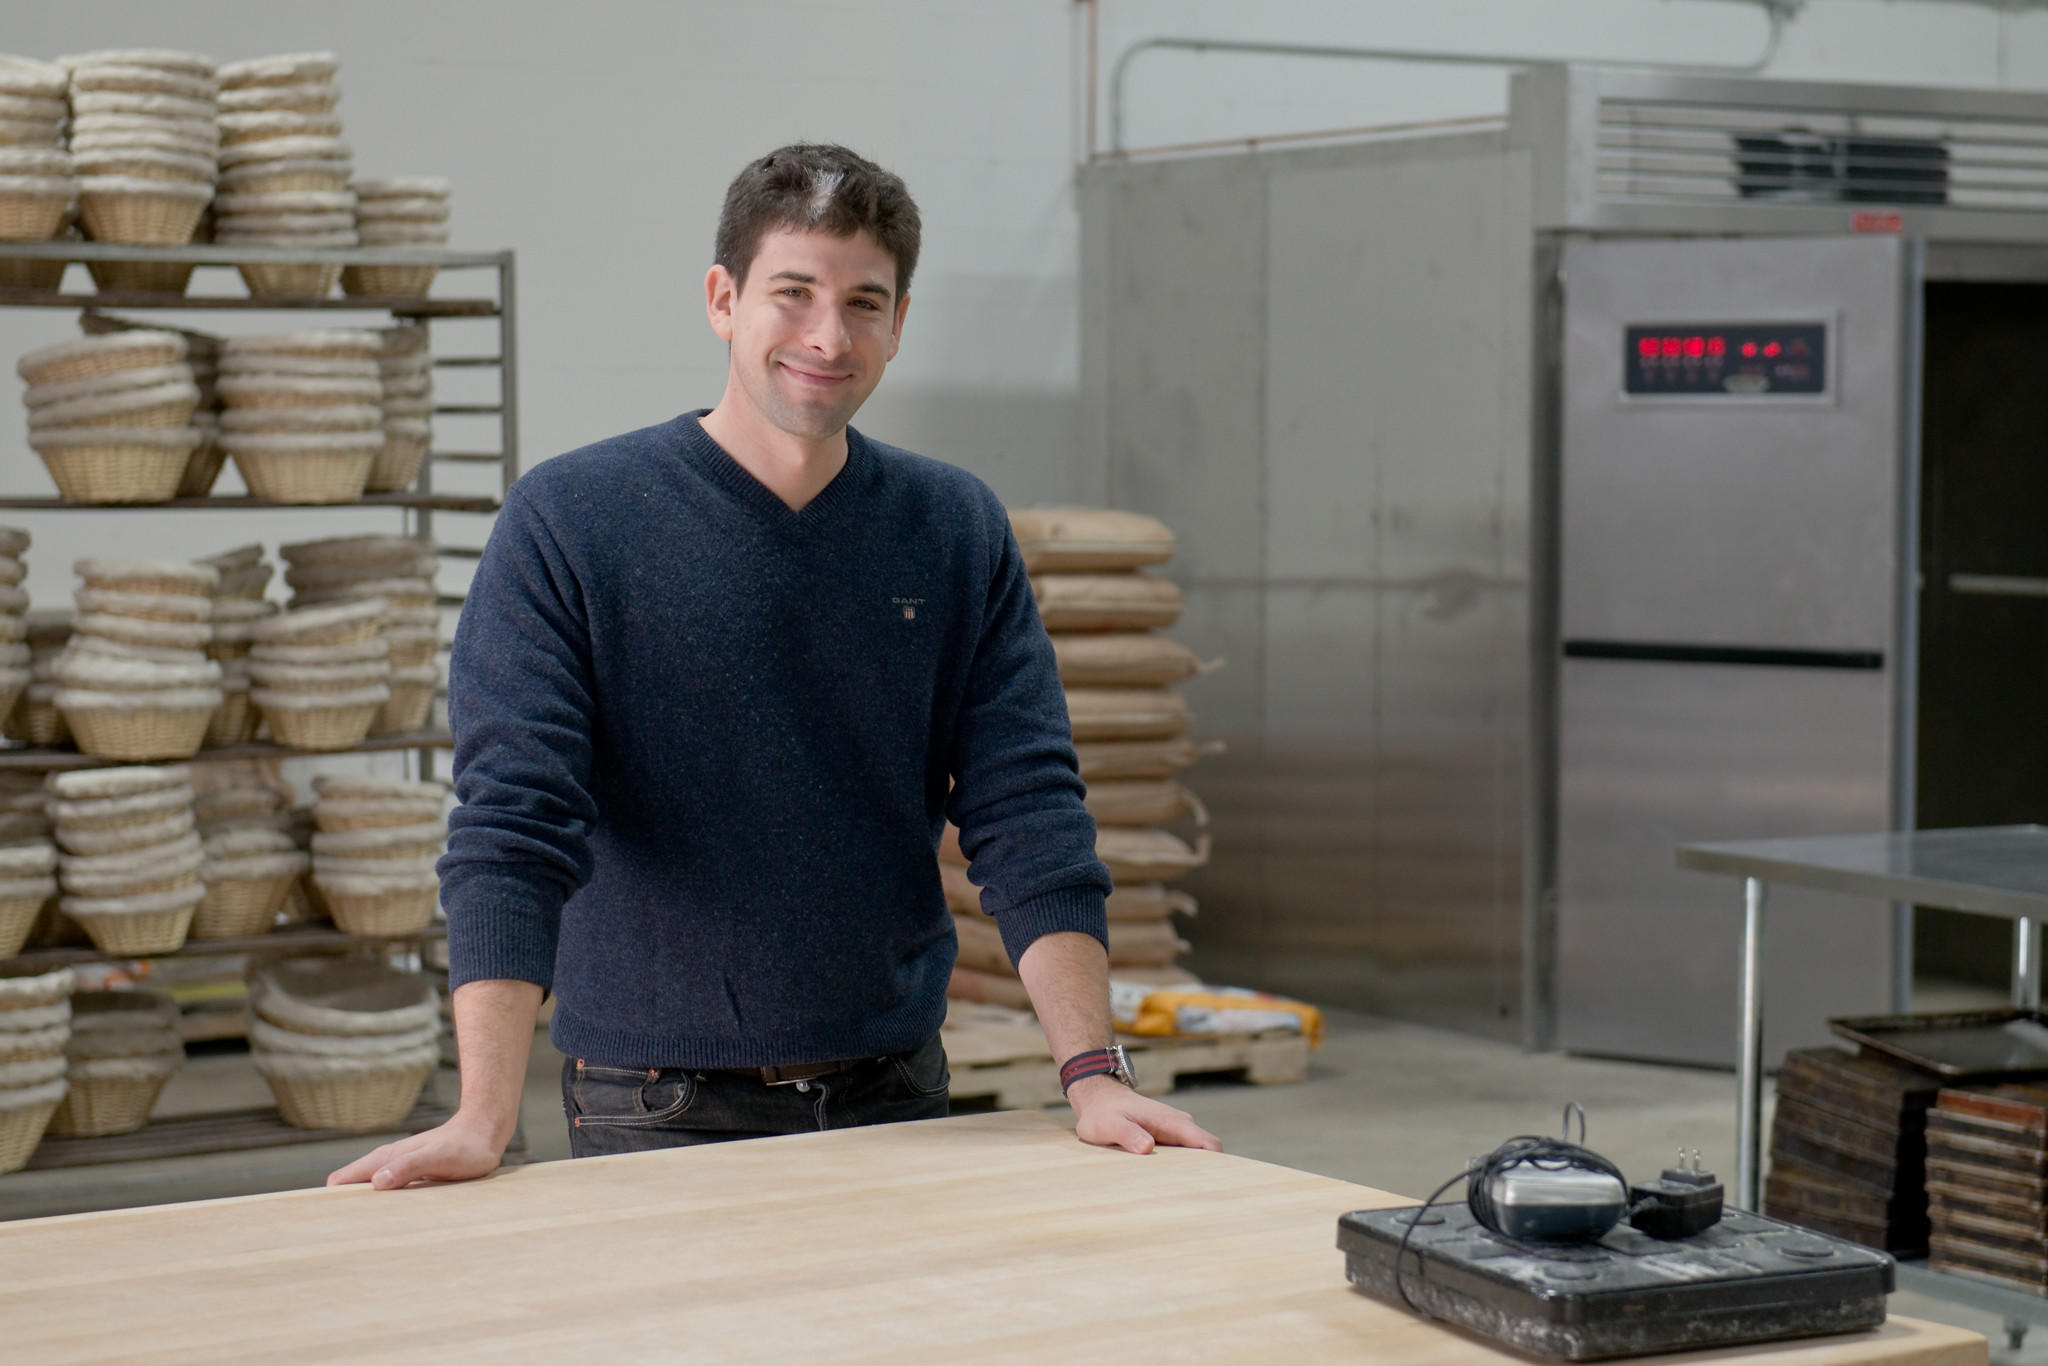 Scott Kluger stands in the new commissary kitchen and bake space in Bloomfield. Kluger says the area will allow Hartford Baking Company to expand its wholesale and retail options in Connecticut and the region.